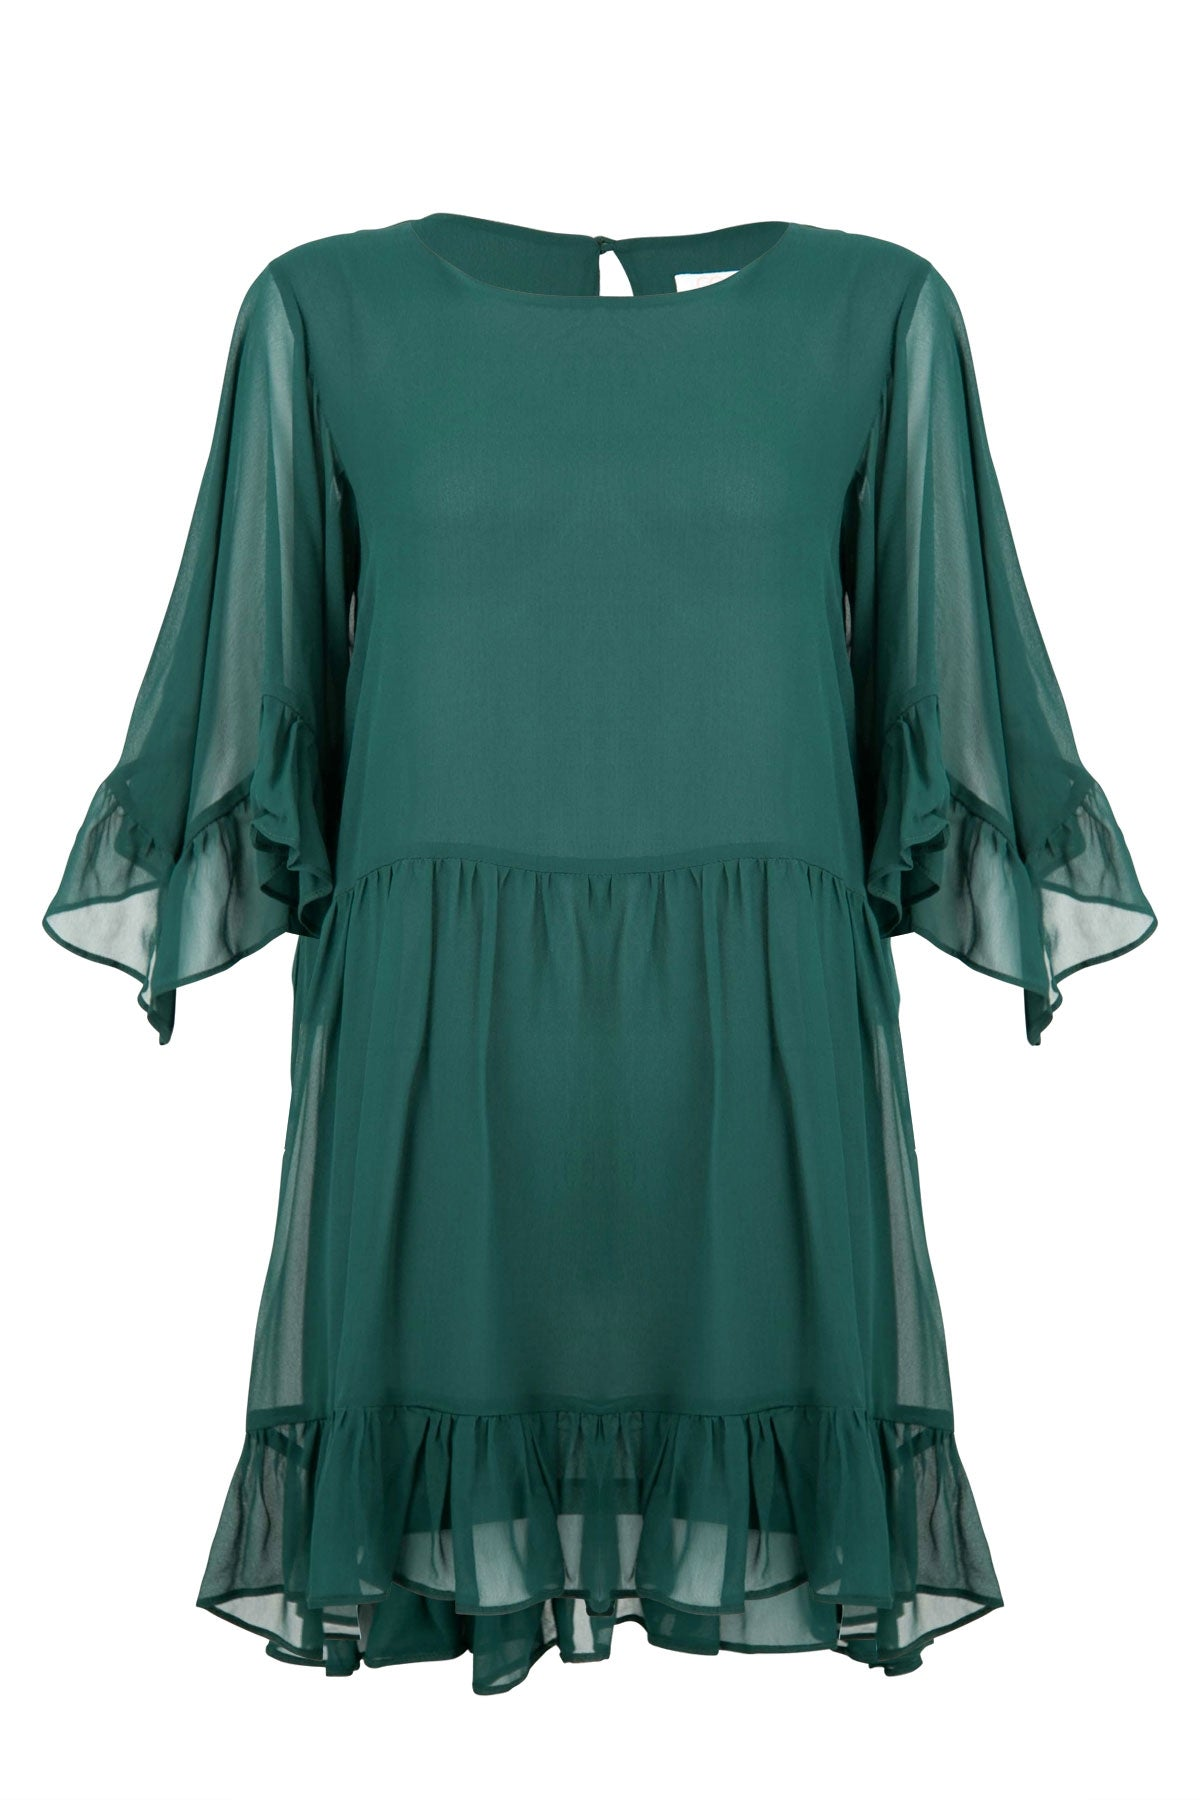 Coop Winging it dress trelise cooper Shop New Zealand Designer Clothing Stockists